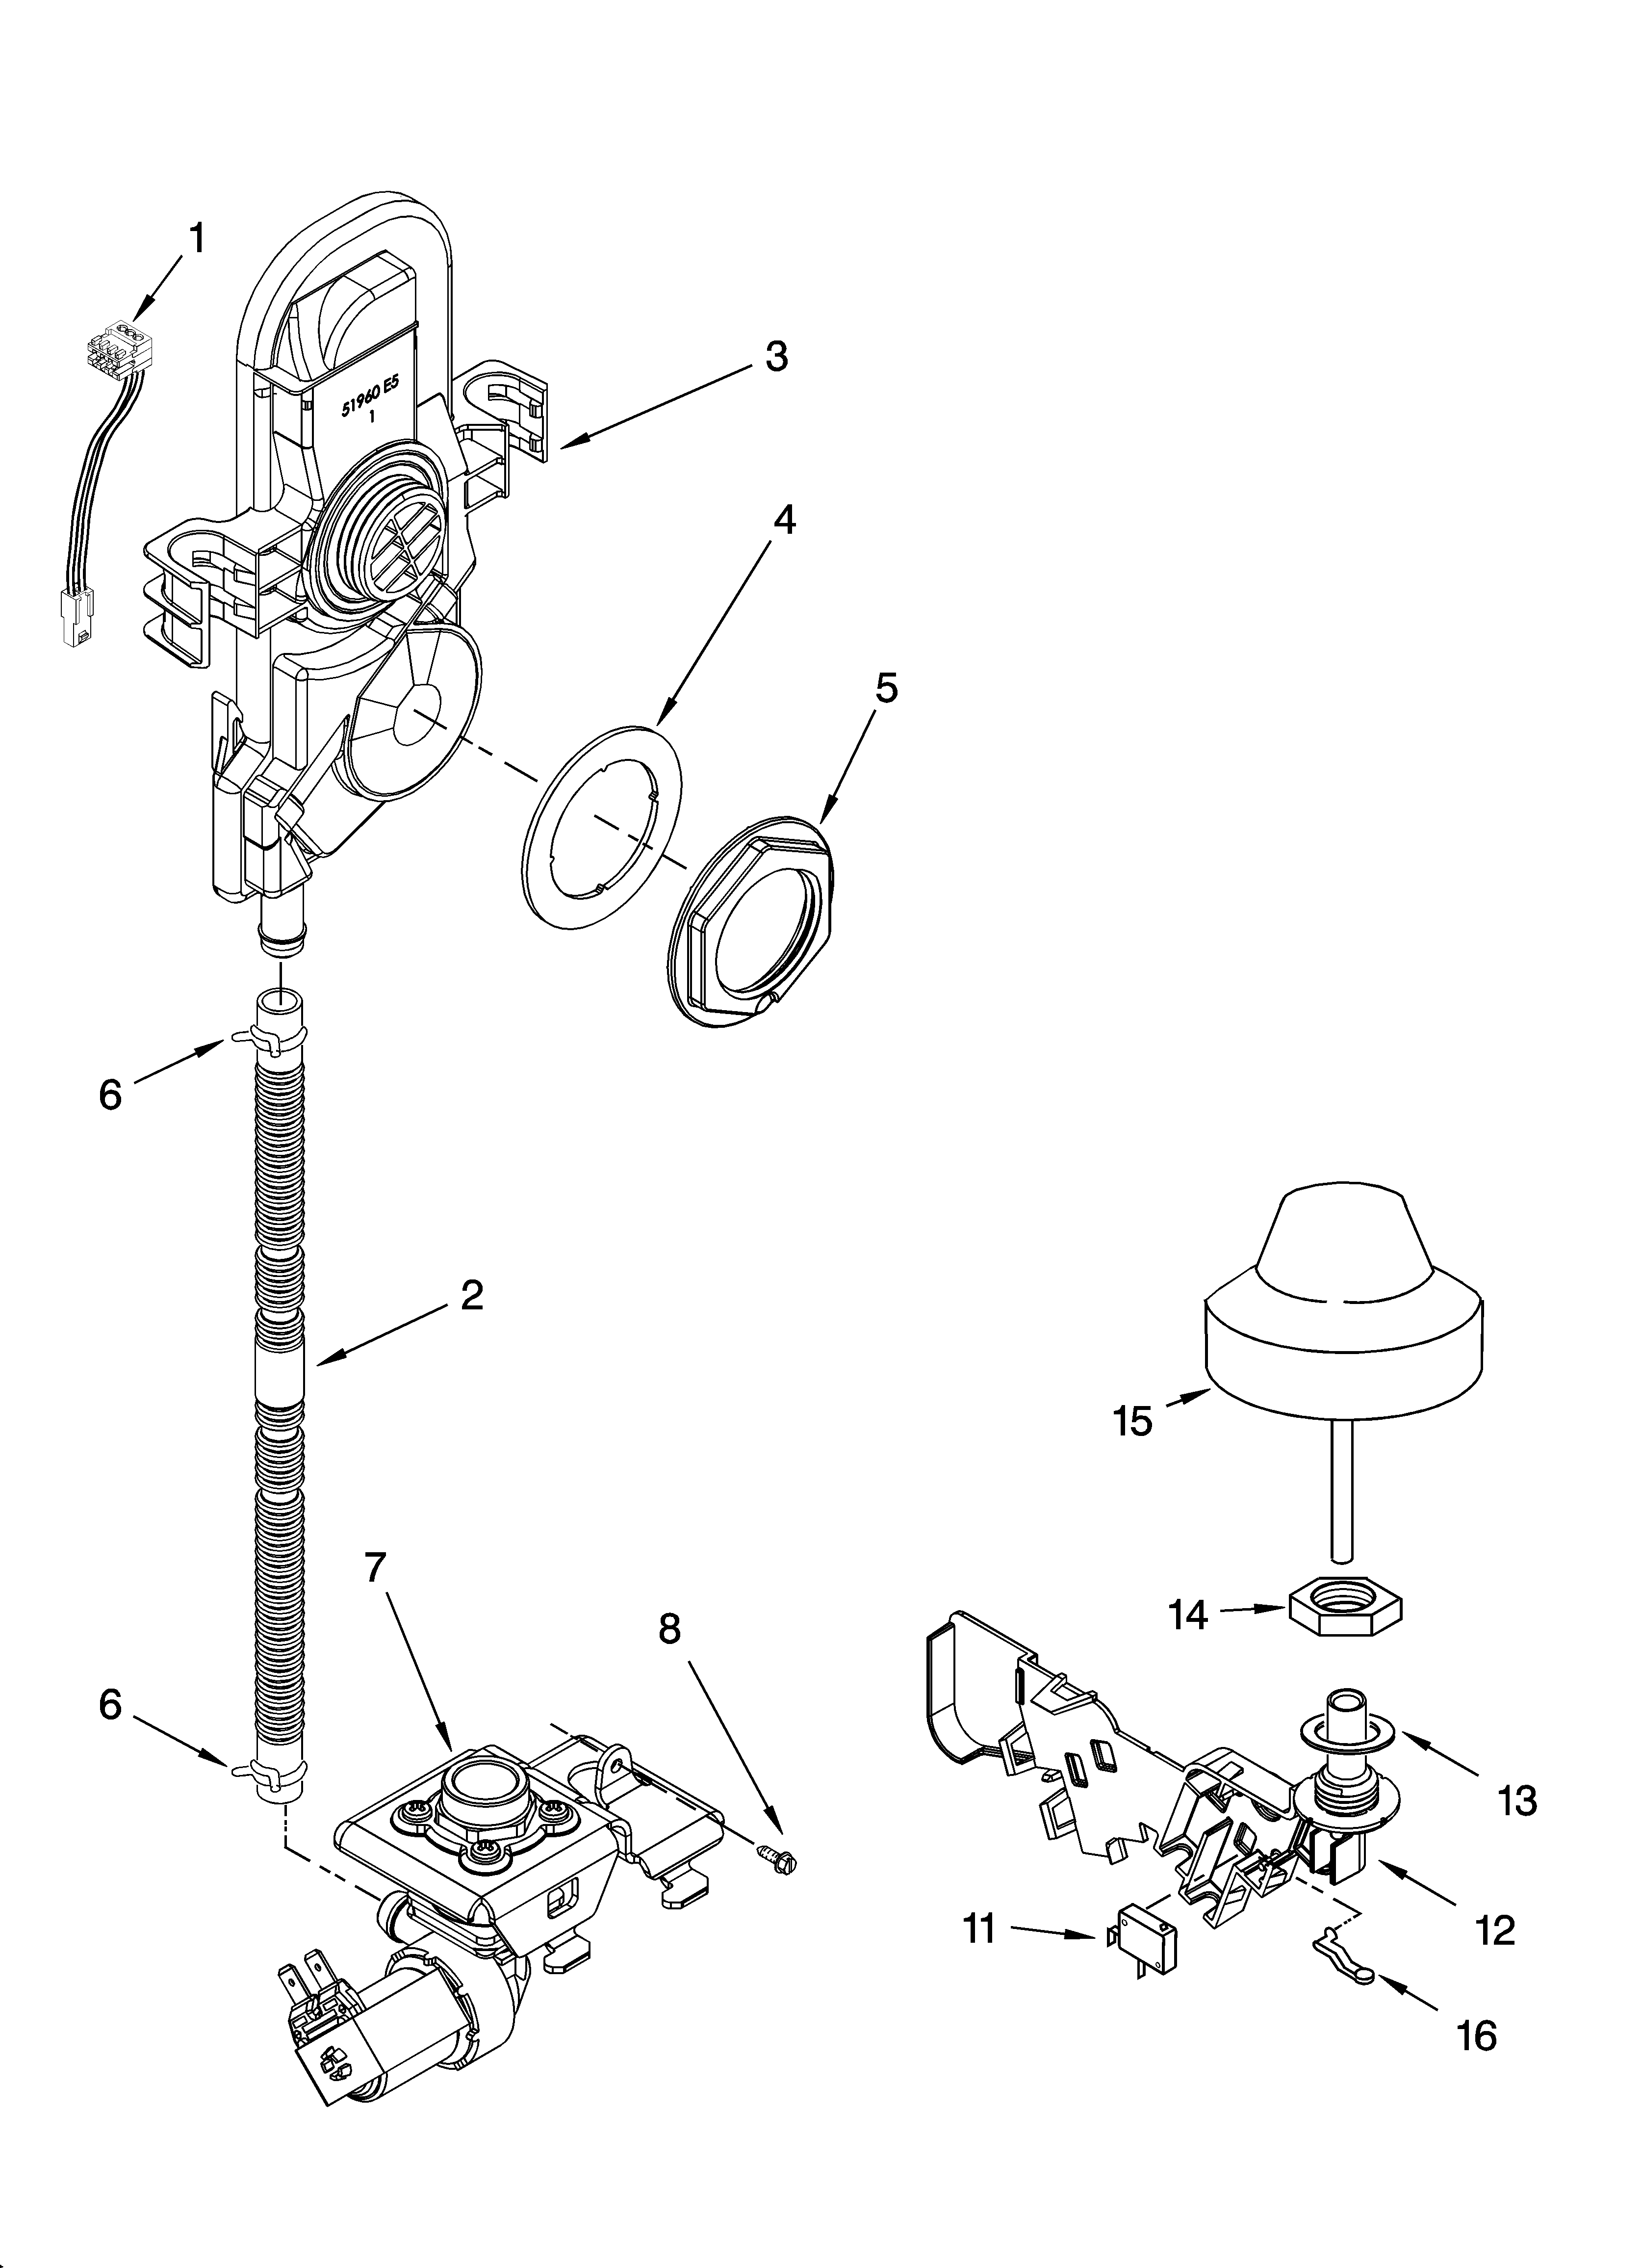 Kenmore Elite 66513869K602 fill and overfill parts diagram